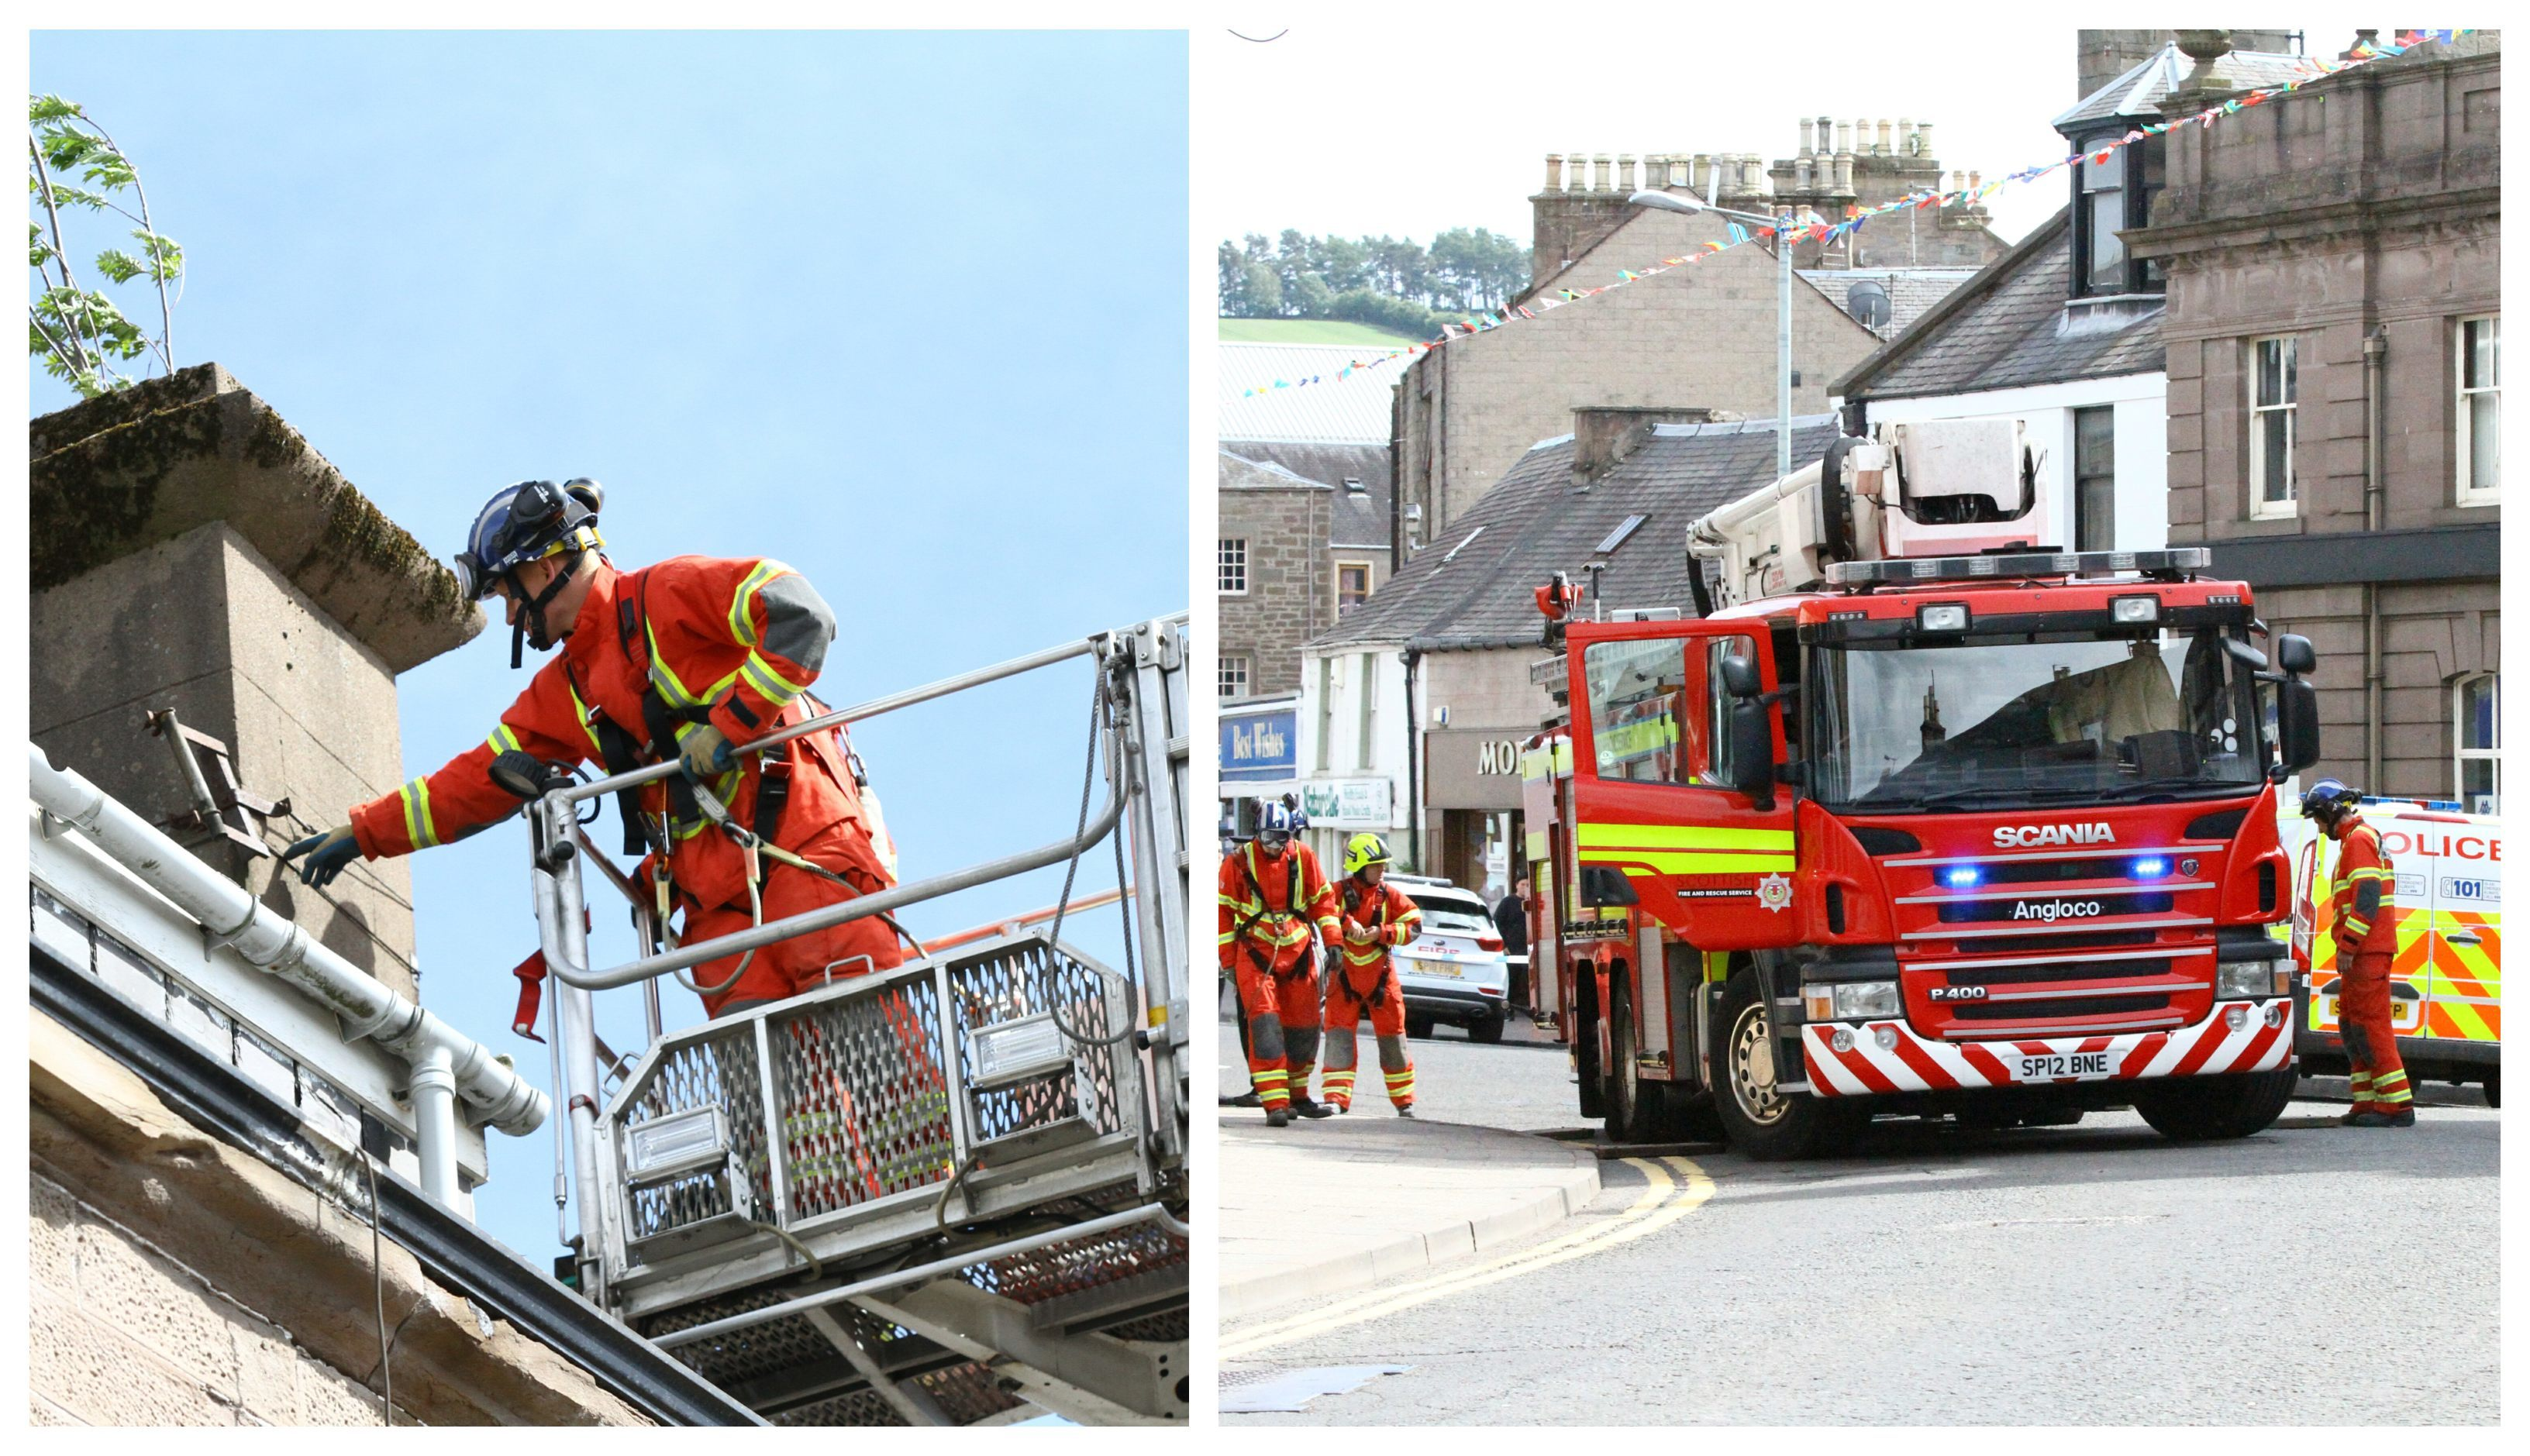 Firefighters at the scene of the incident on Castle Street, Forfar.